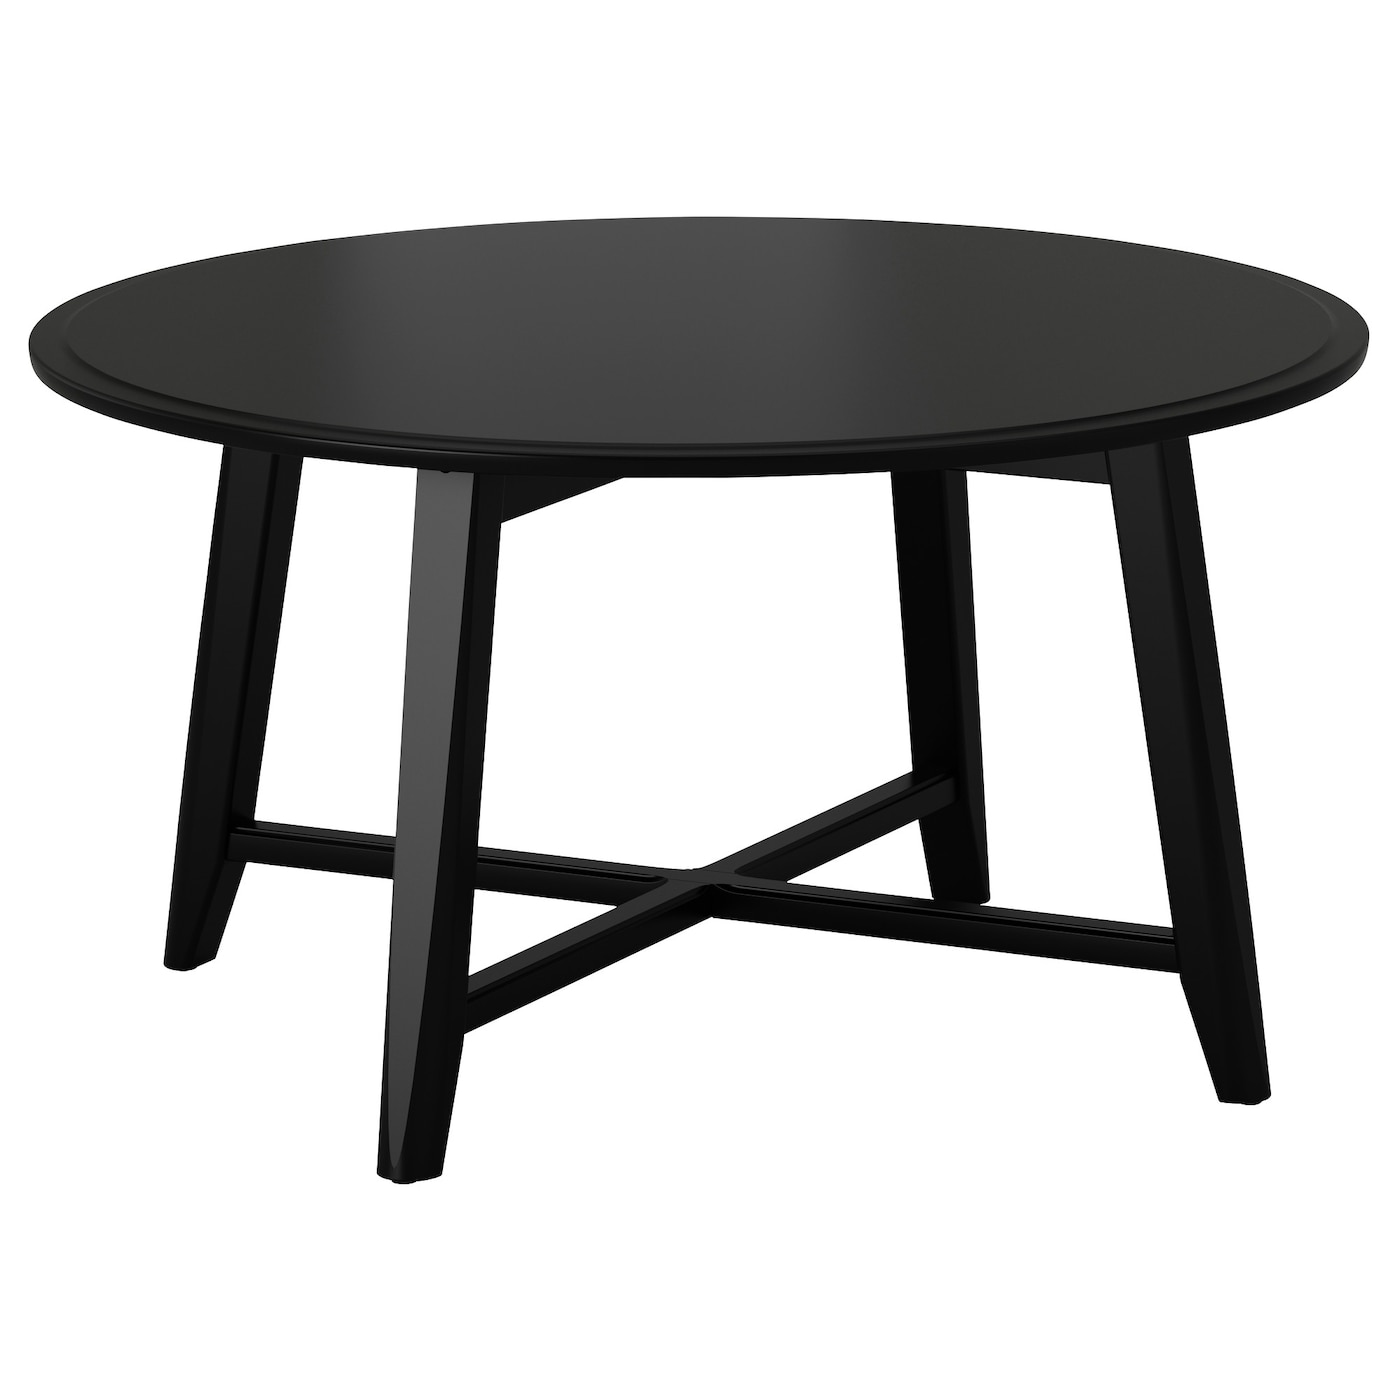 KRAGSTA Coffee table Black 90 cm IKEA